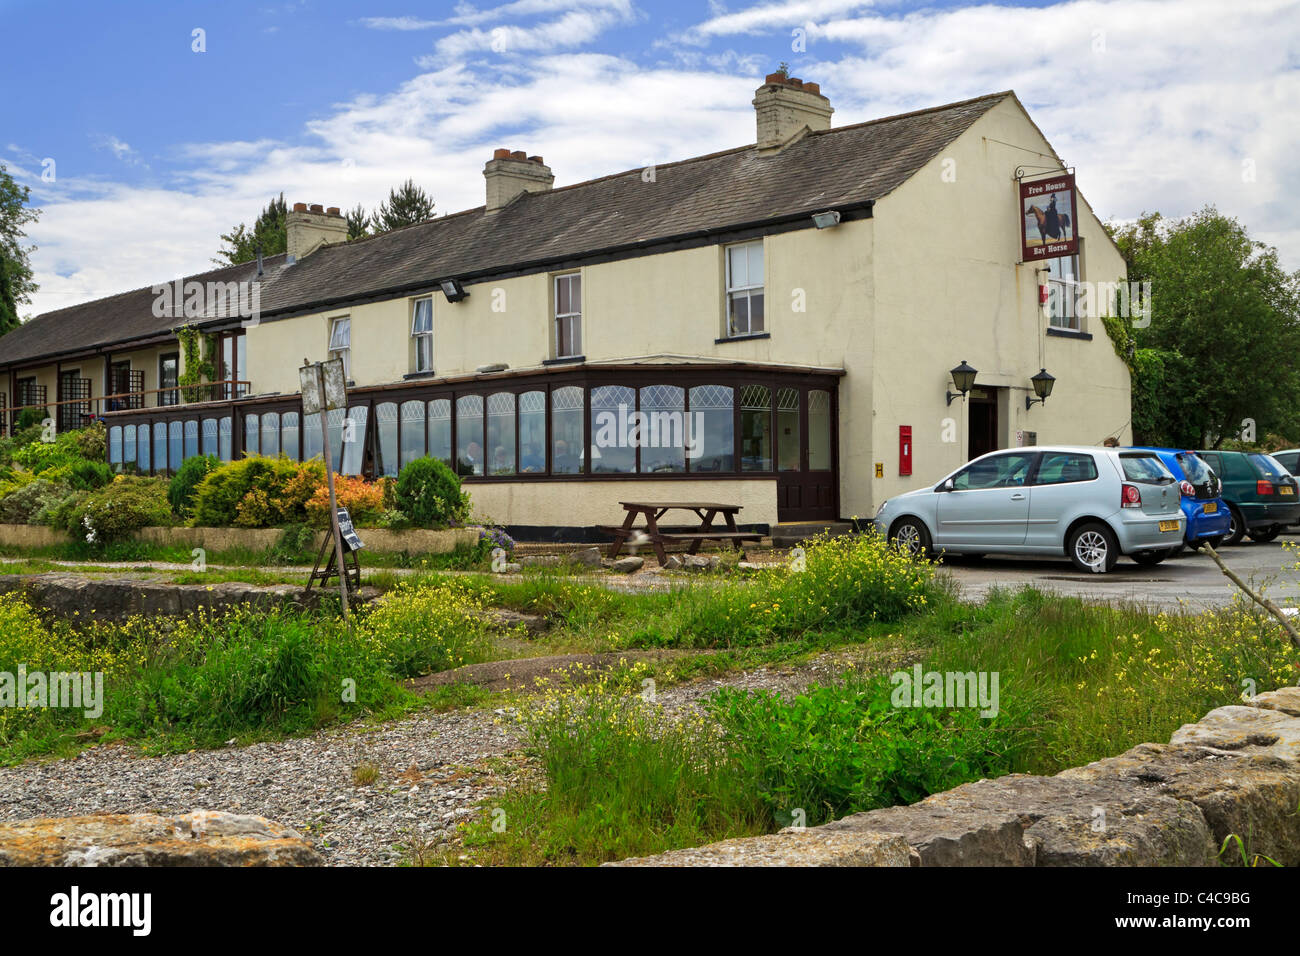 Bay Horse Hotel, Canal Foot, Cumbria. - Stock Image